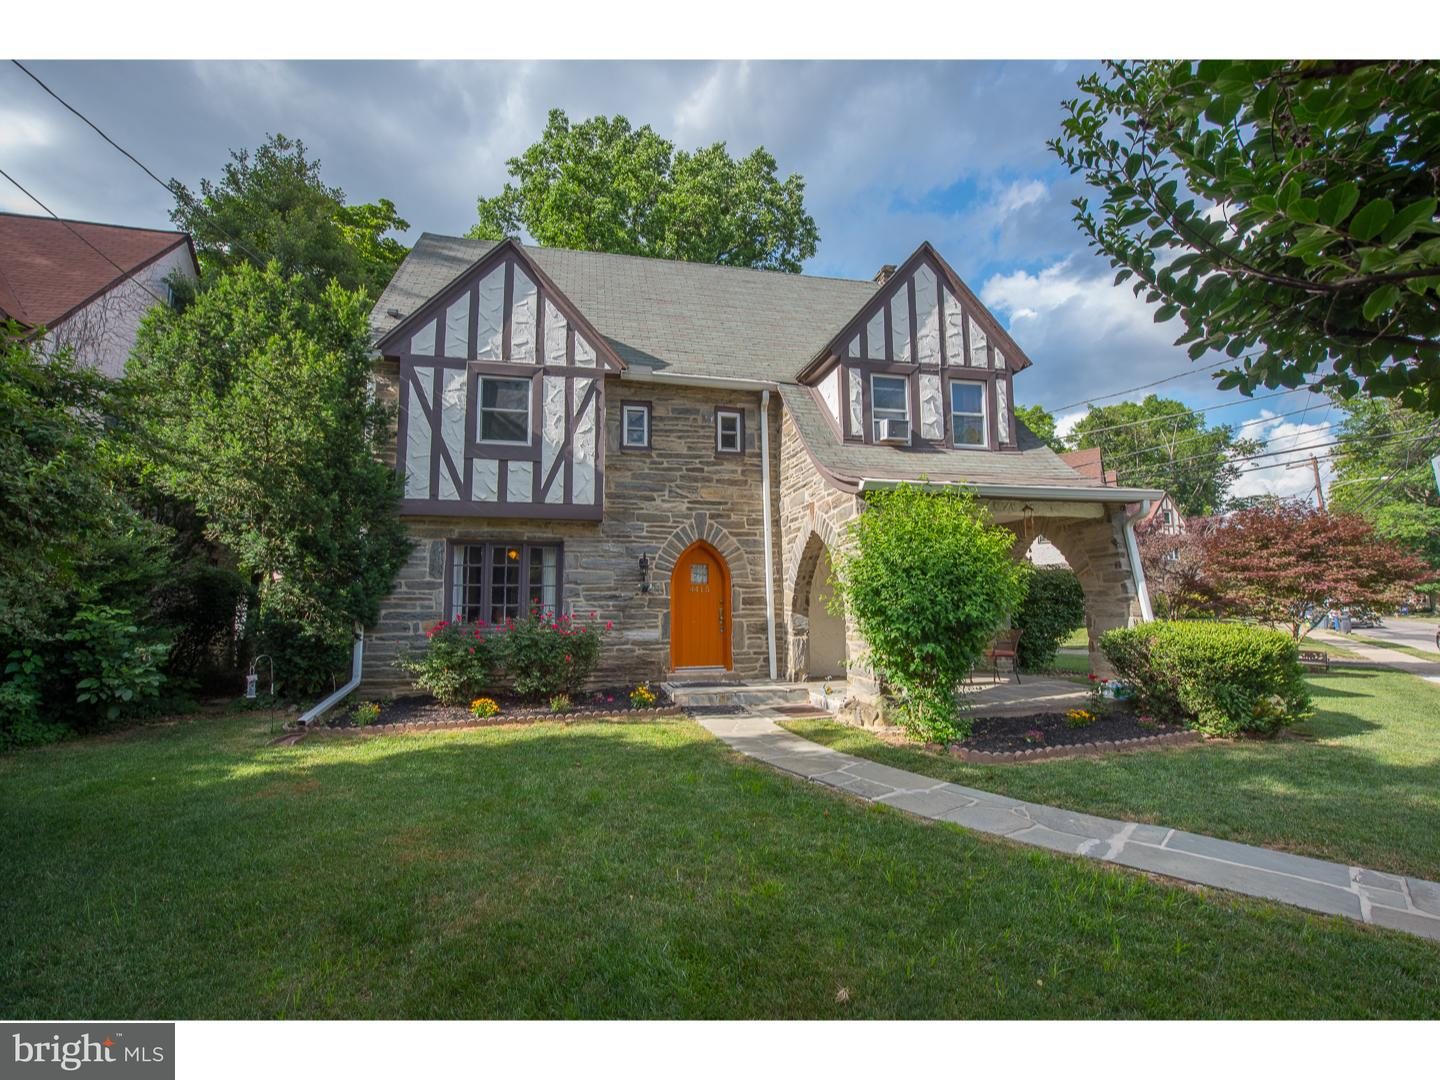 4415 Bond Avenue Drexel Hill , PA 19026